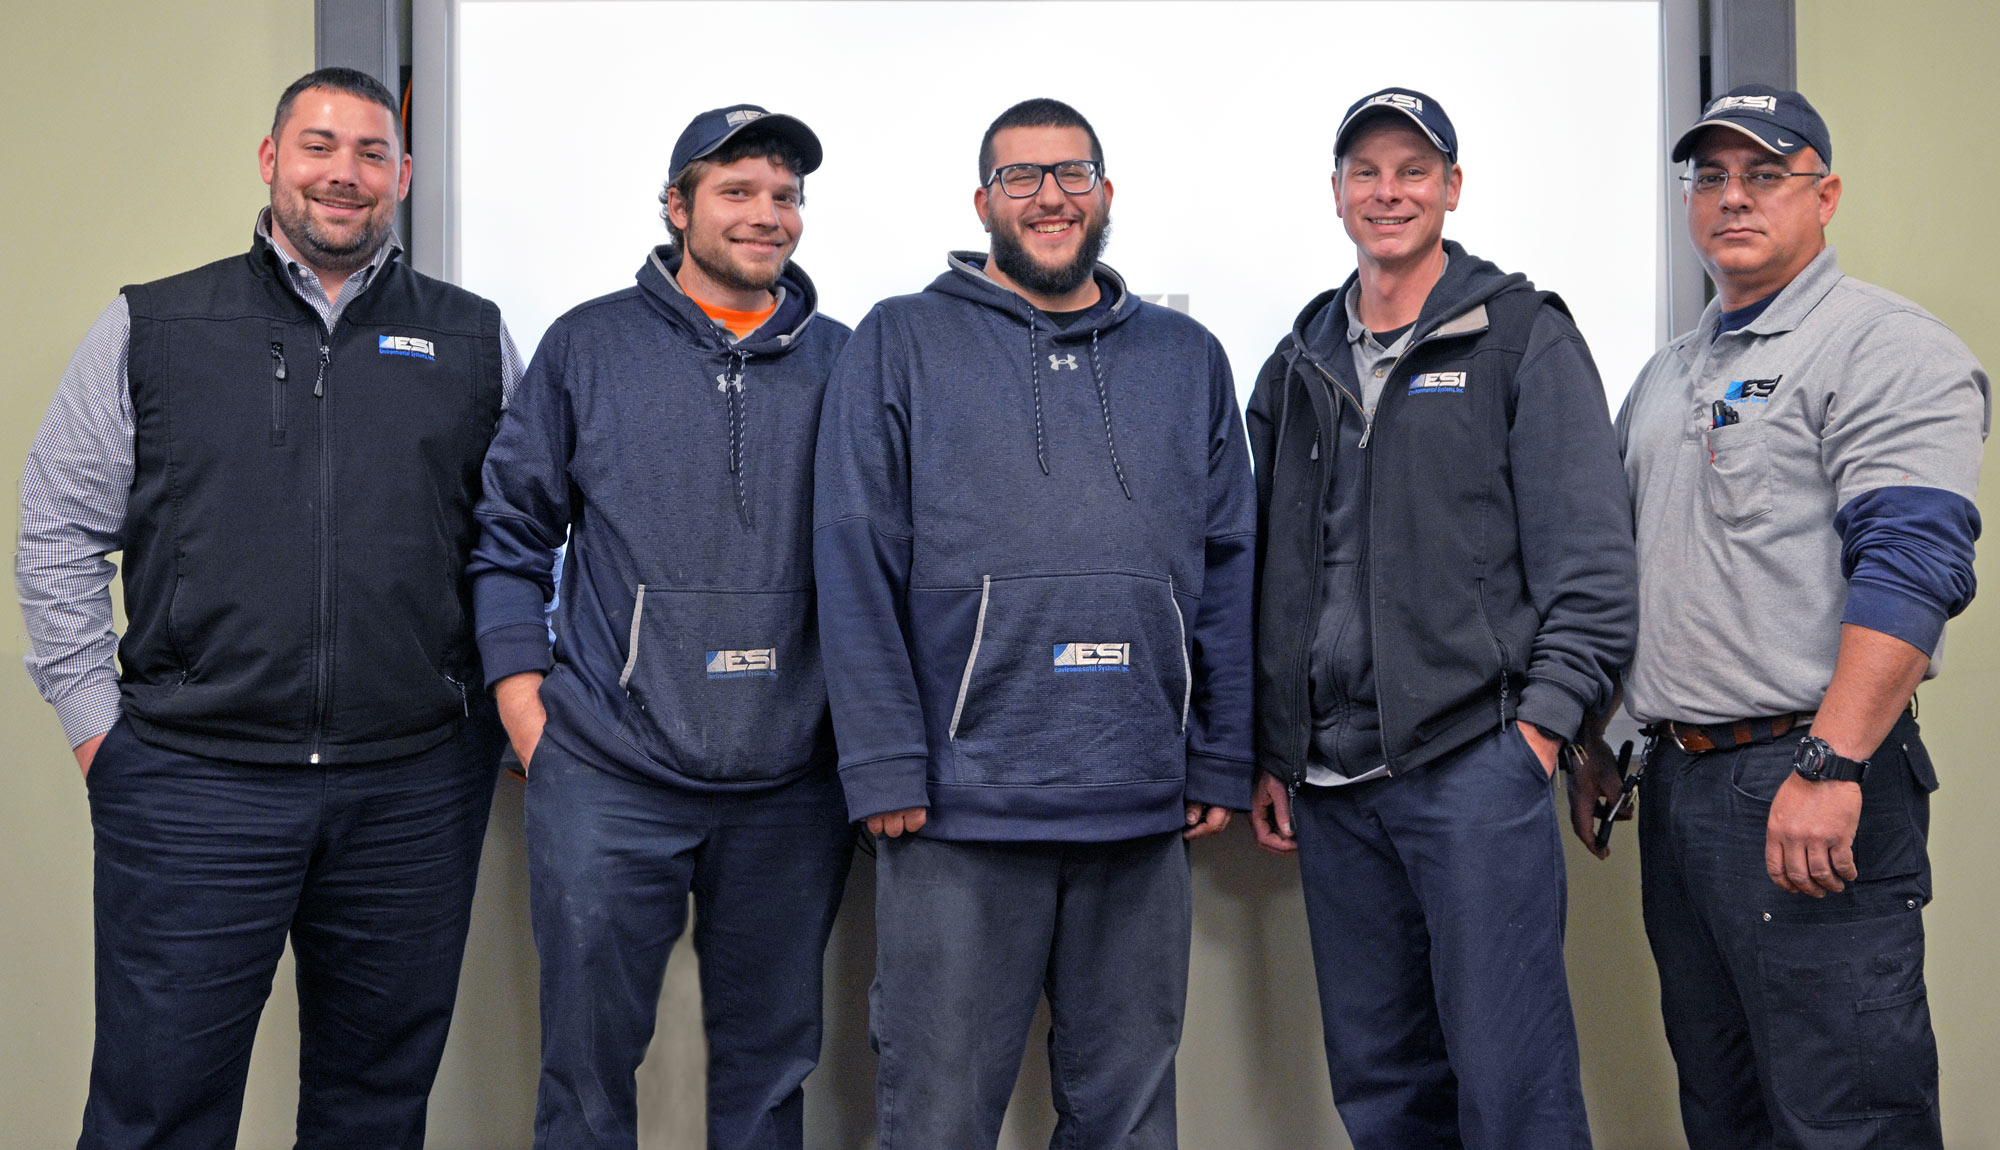 Miichael Muratori, Service Manager at ESI in Attleboro, MA is with 4 MTTI HVAC Graduates.